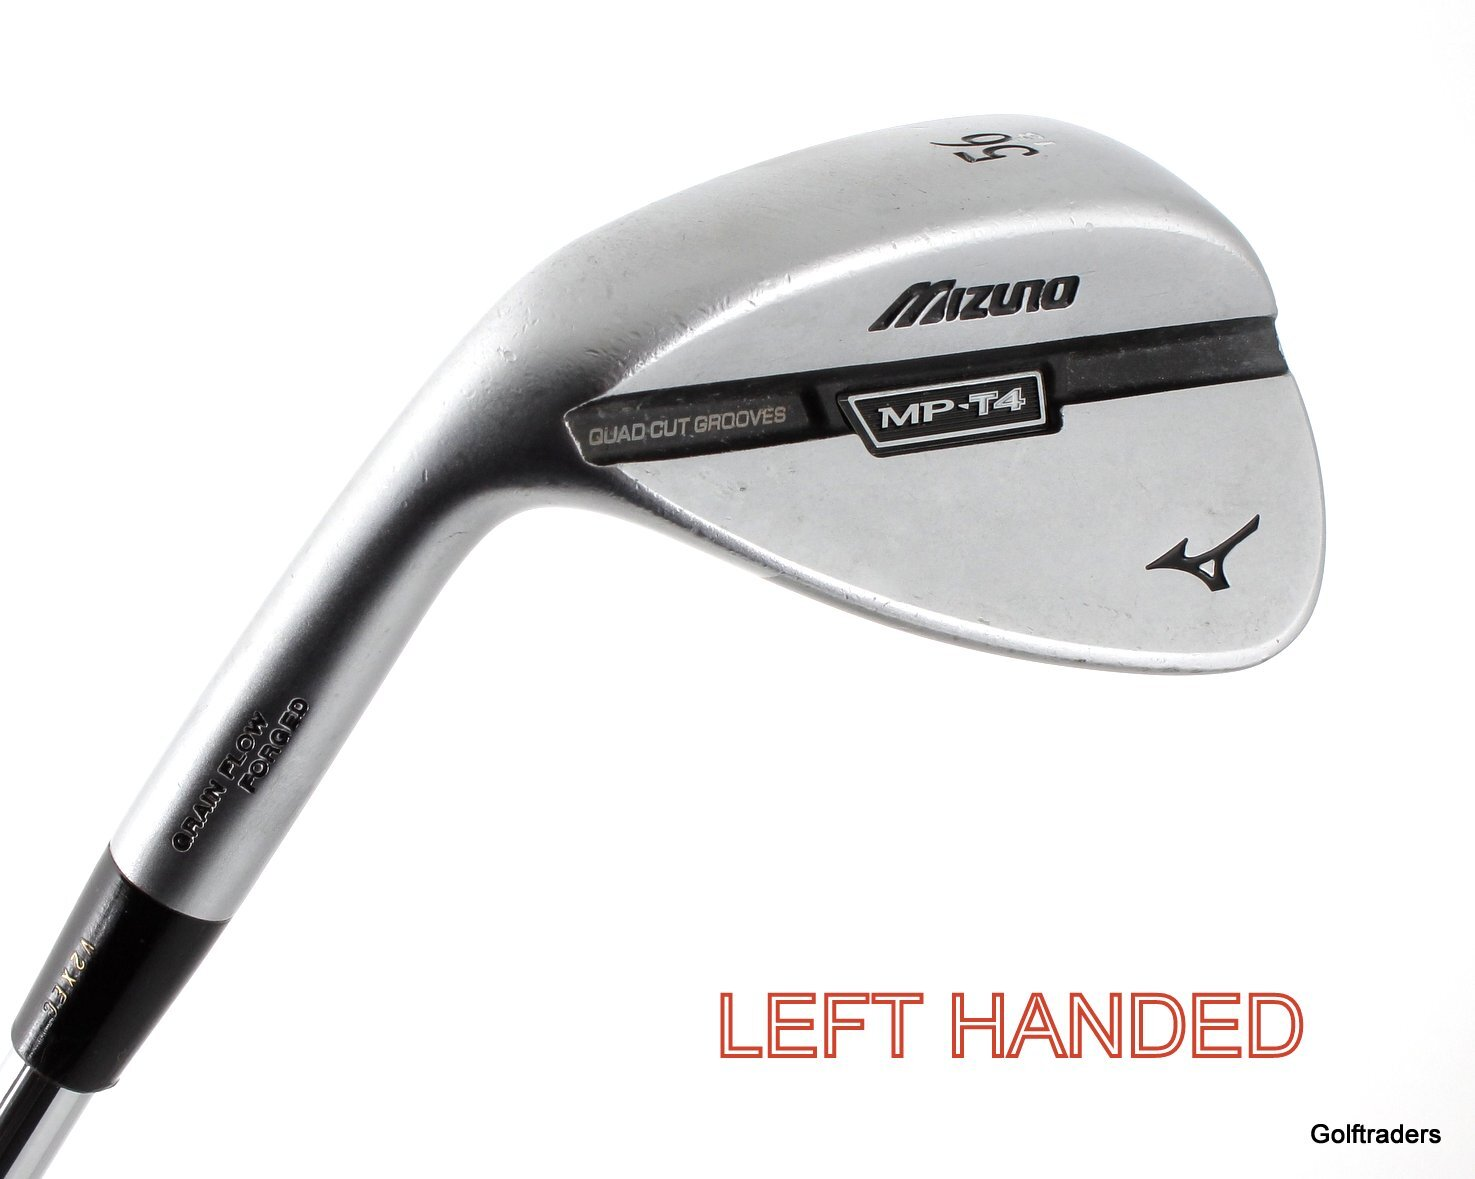 Mizuno MP-T4 Forged Sand Wedge 56.13 Steel Wedge Flex Left Handed G1137 - Image 1